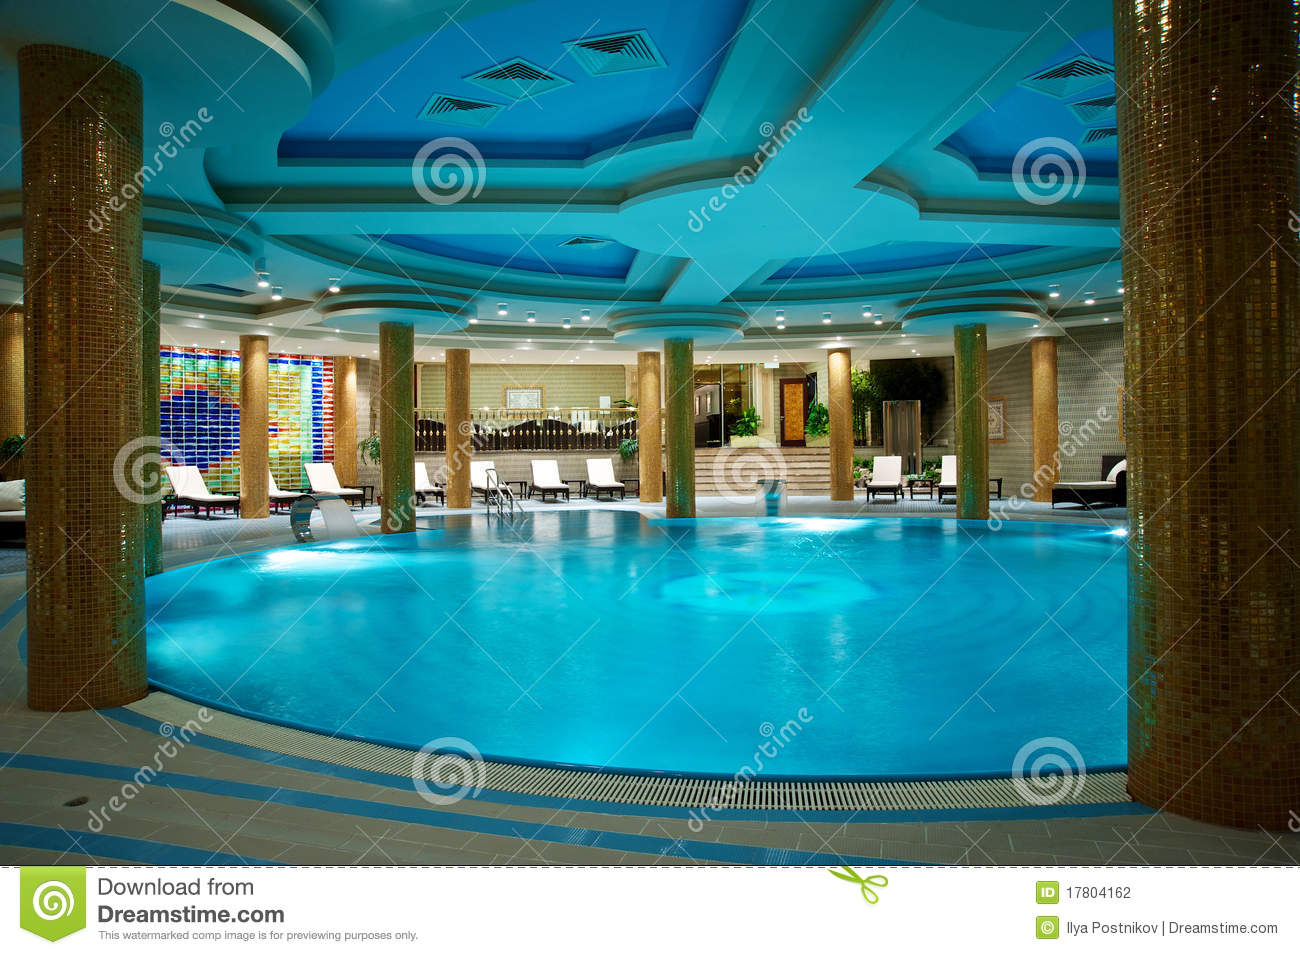 Luxury swimming pools stock photography image 17804162 for Luxury swimming pools